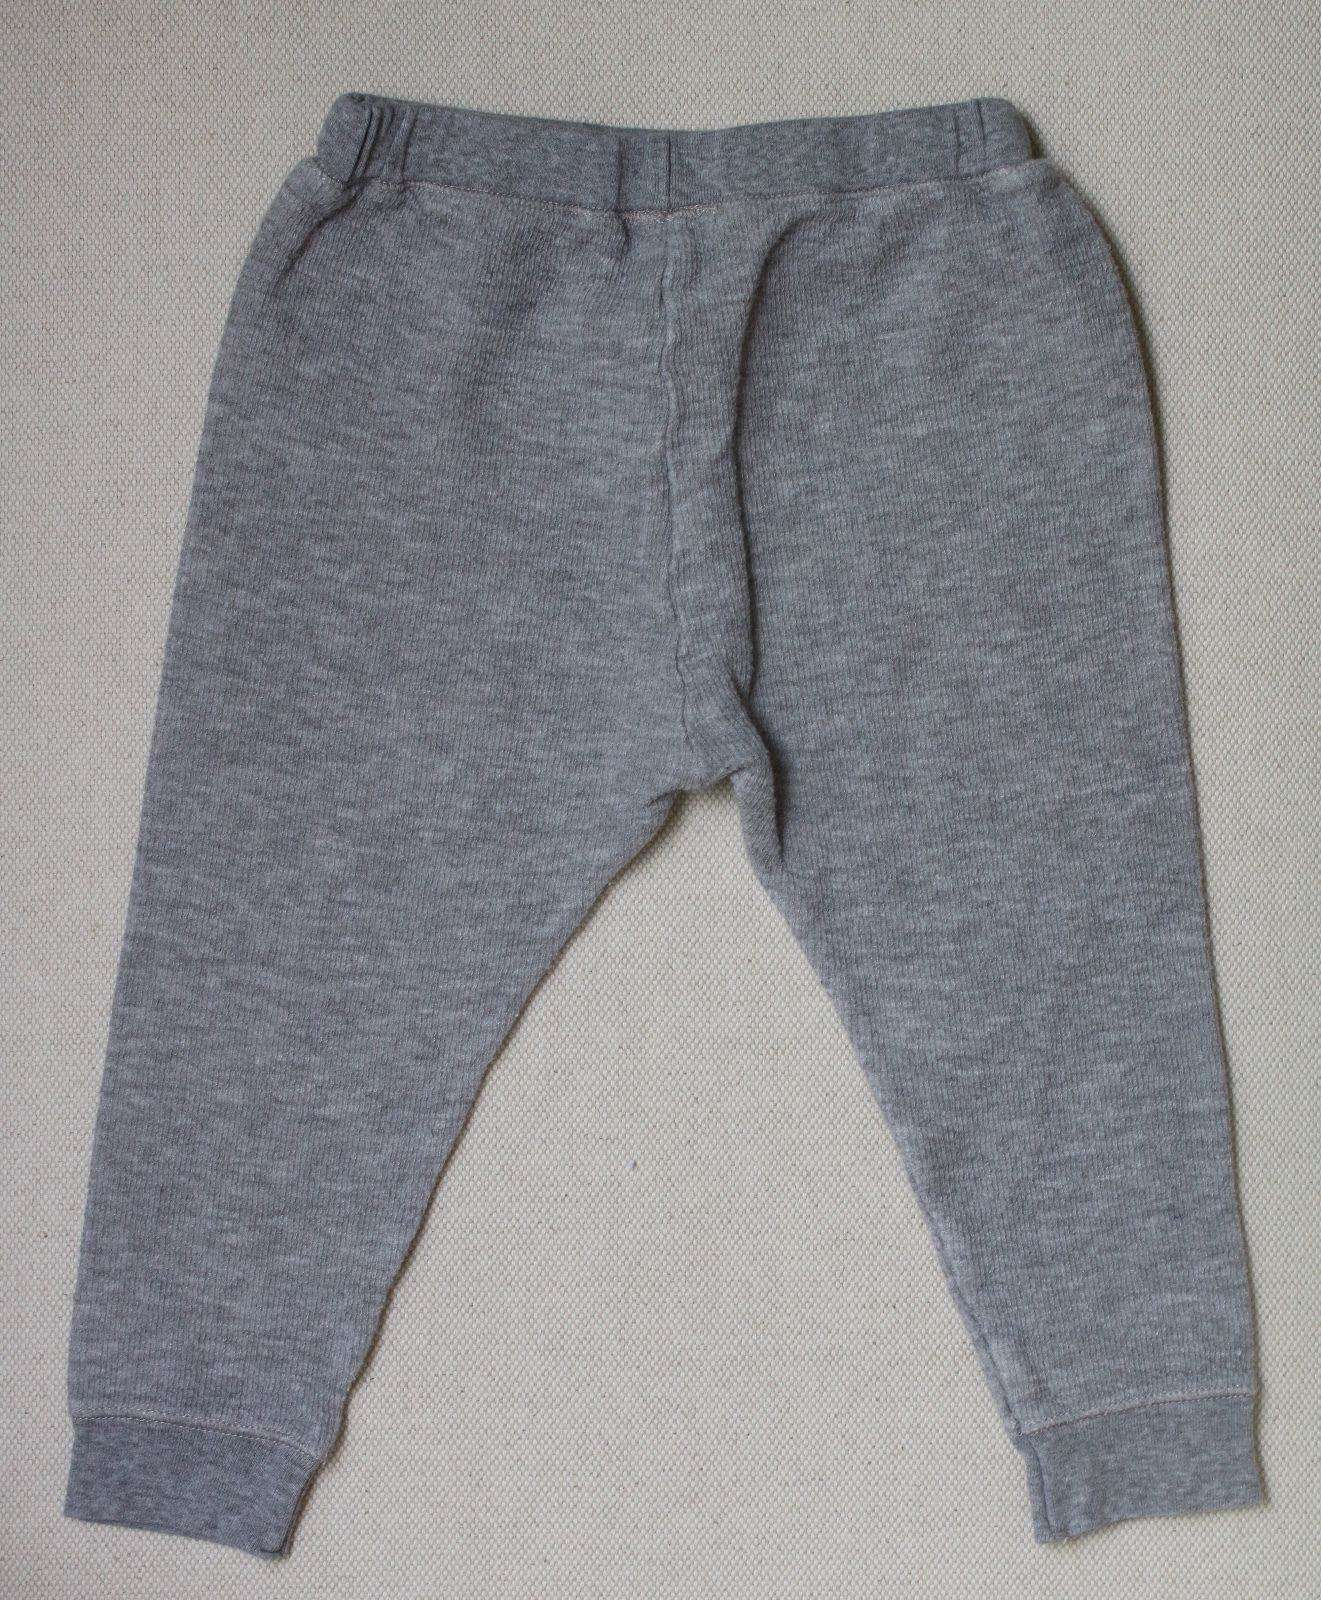 BONPOINT BABY GREY JERSEY TRACKSUIT 2 YEARS